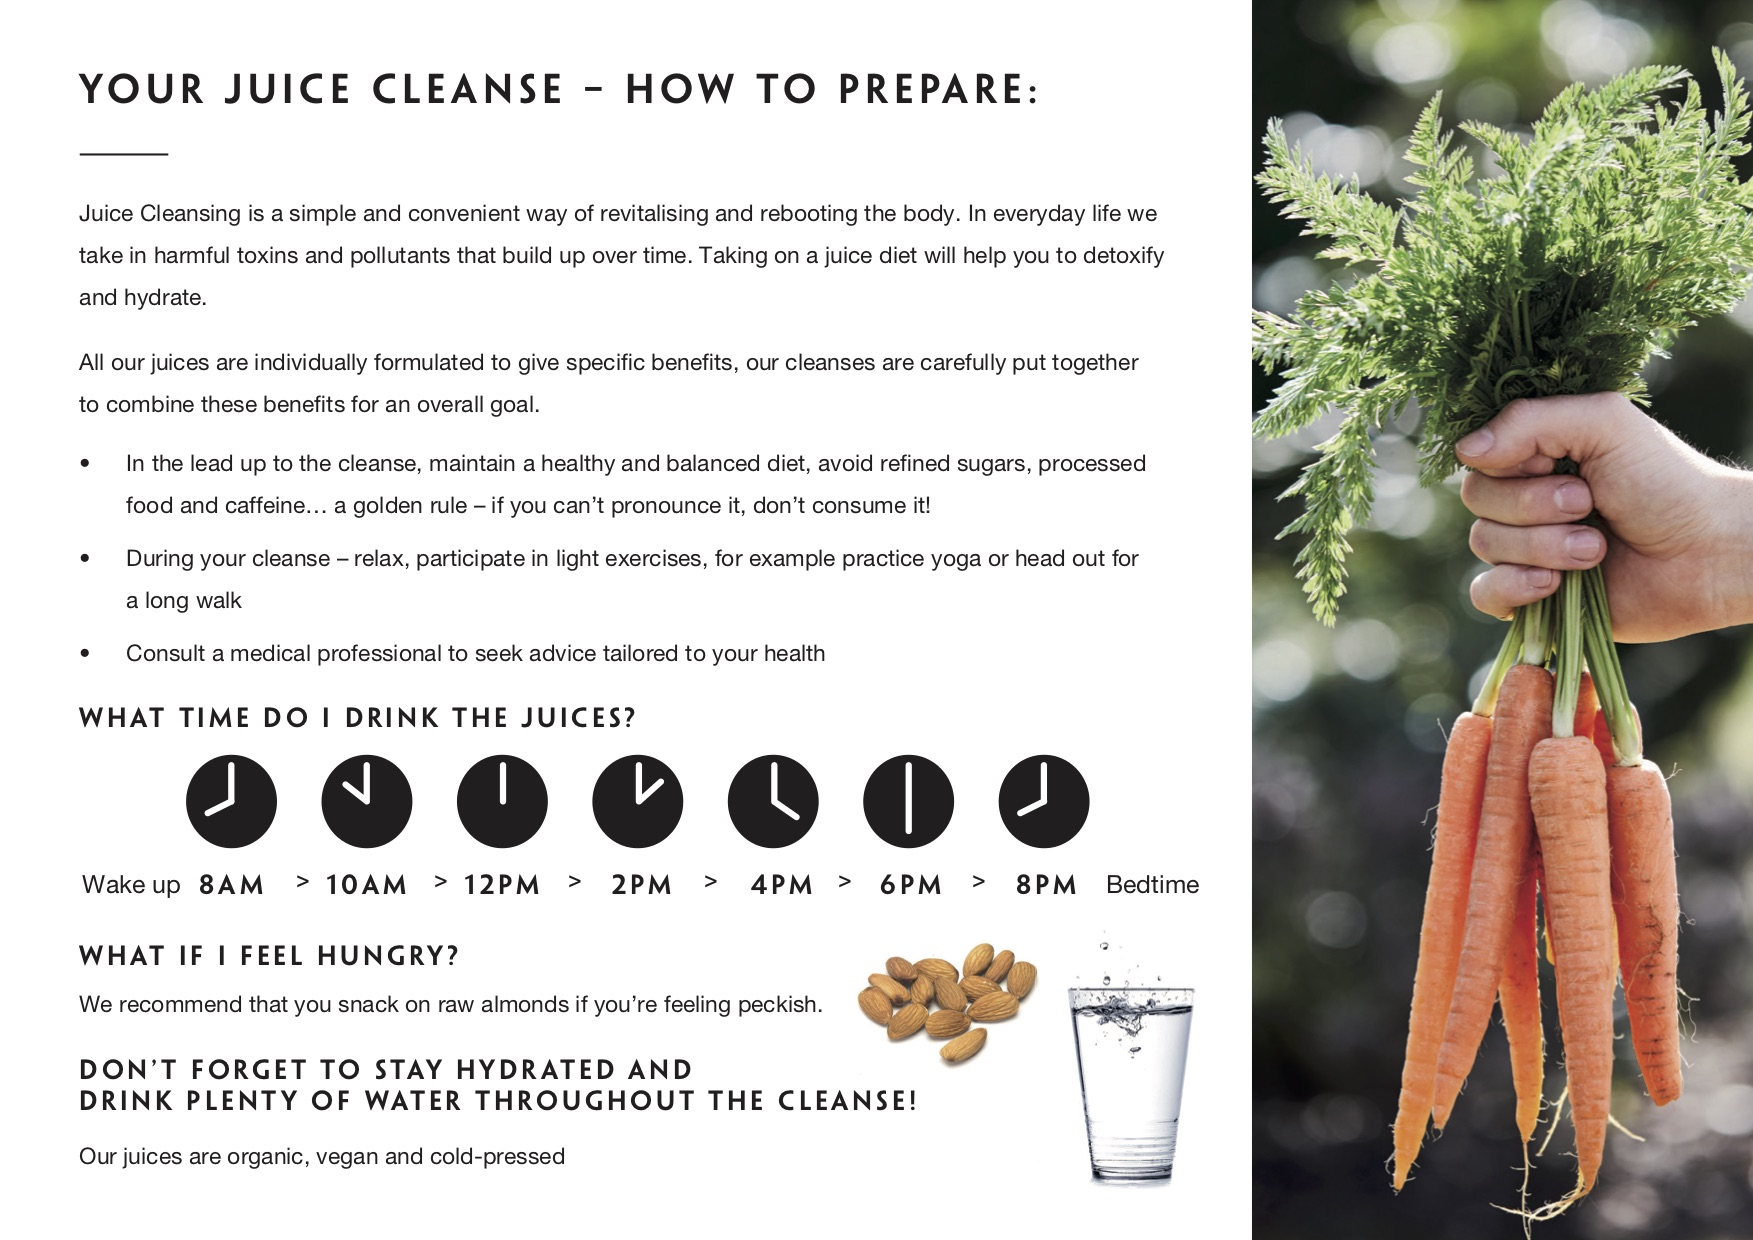 Daily Dose Juice Cleanse Information.jpg